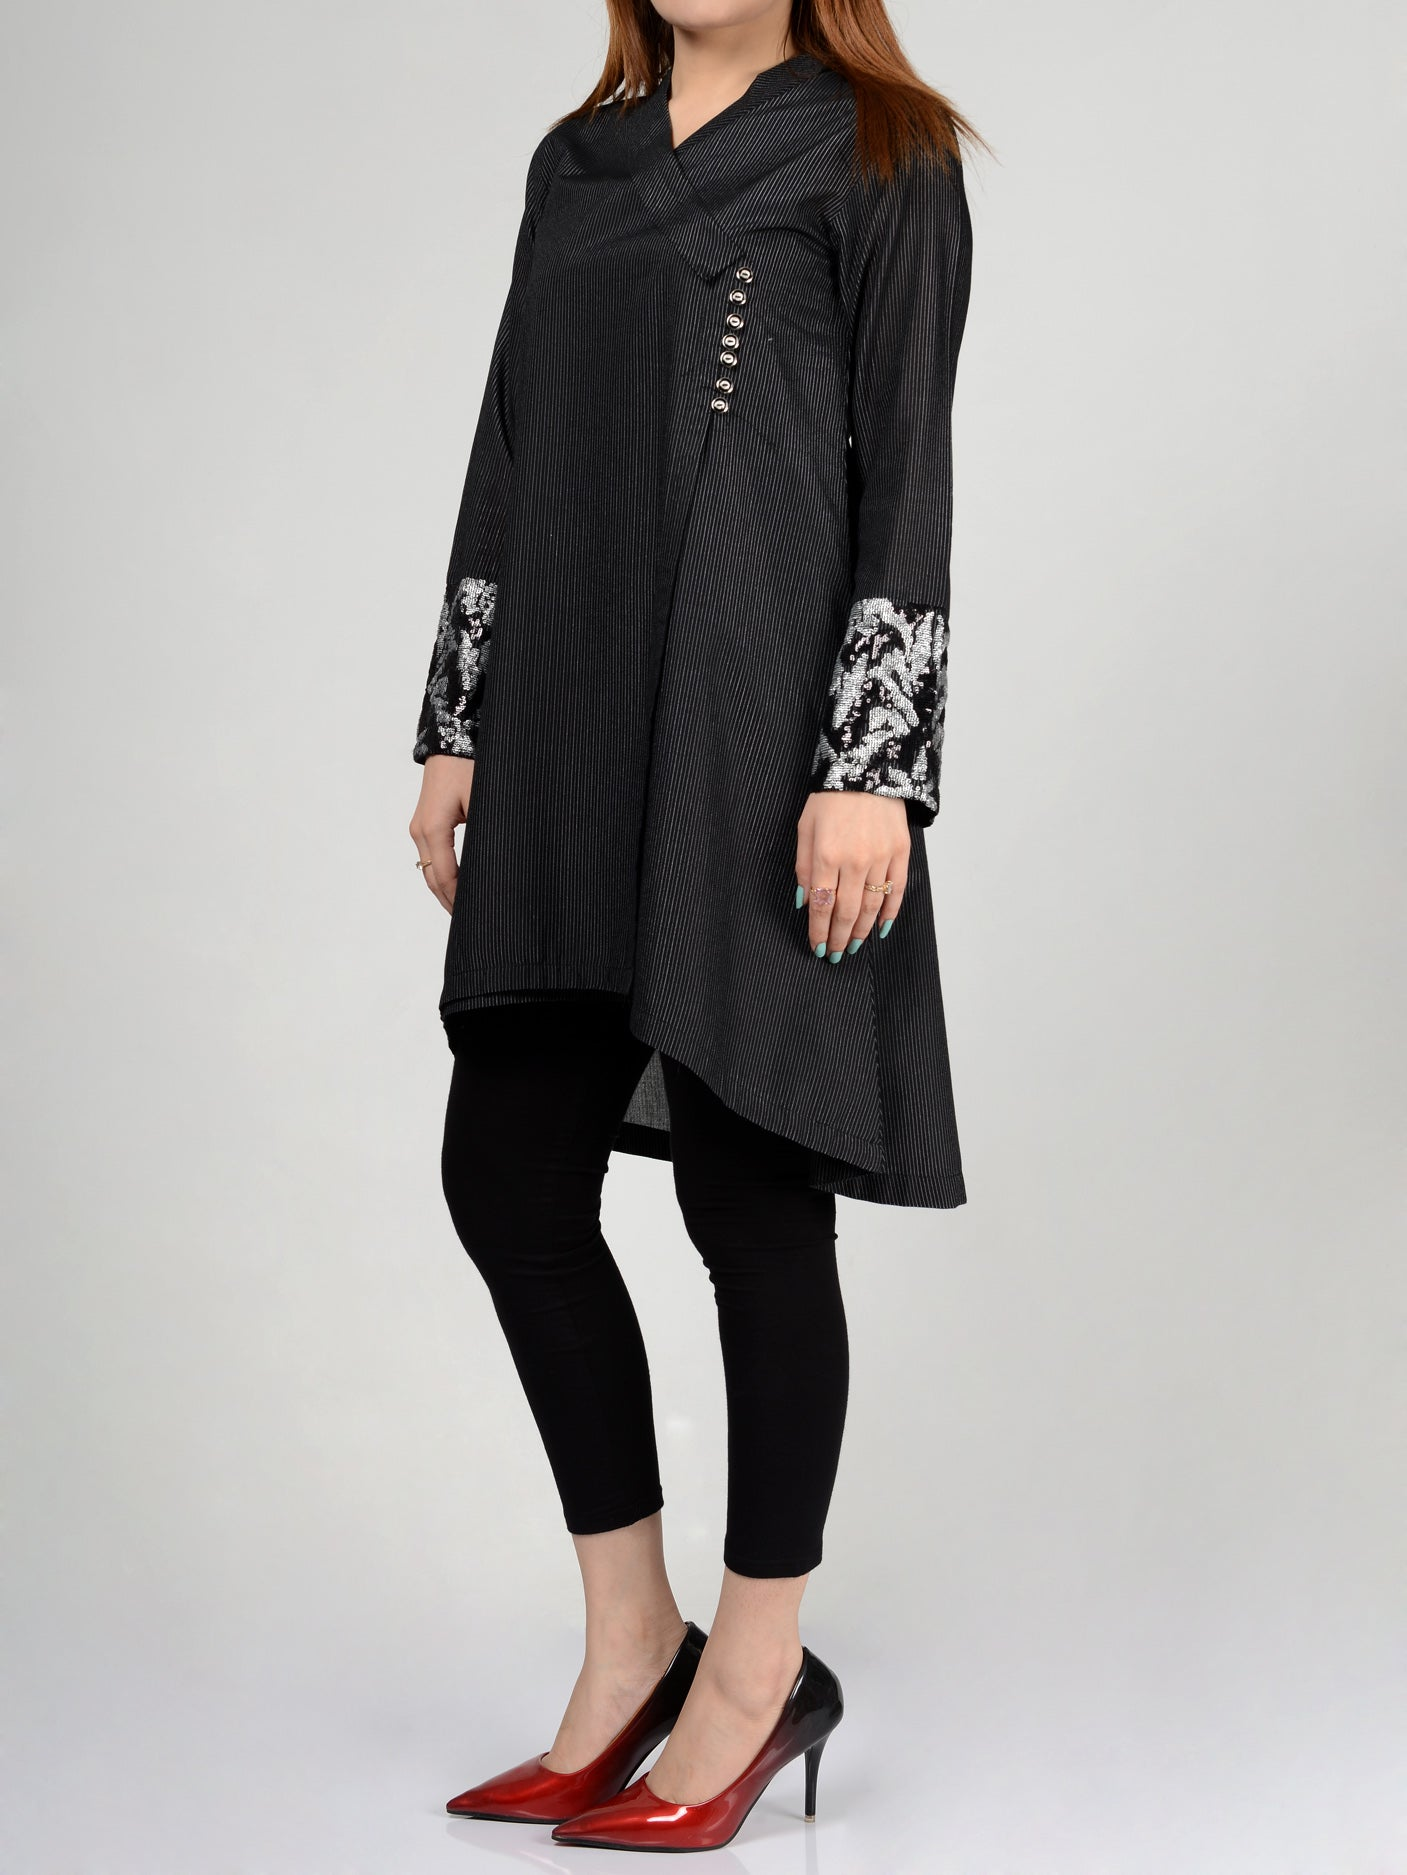 Buy Embellished Lawn Shirt P0238 Online in Pakistan | Limelight.pk